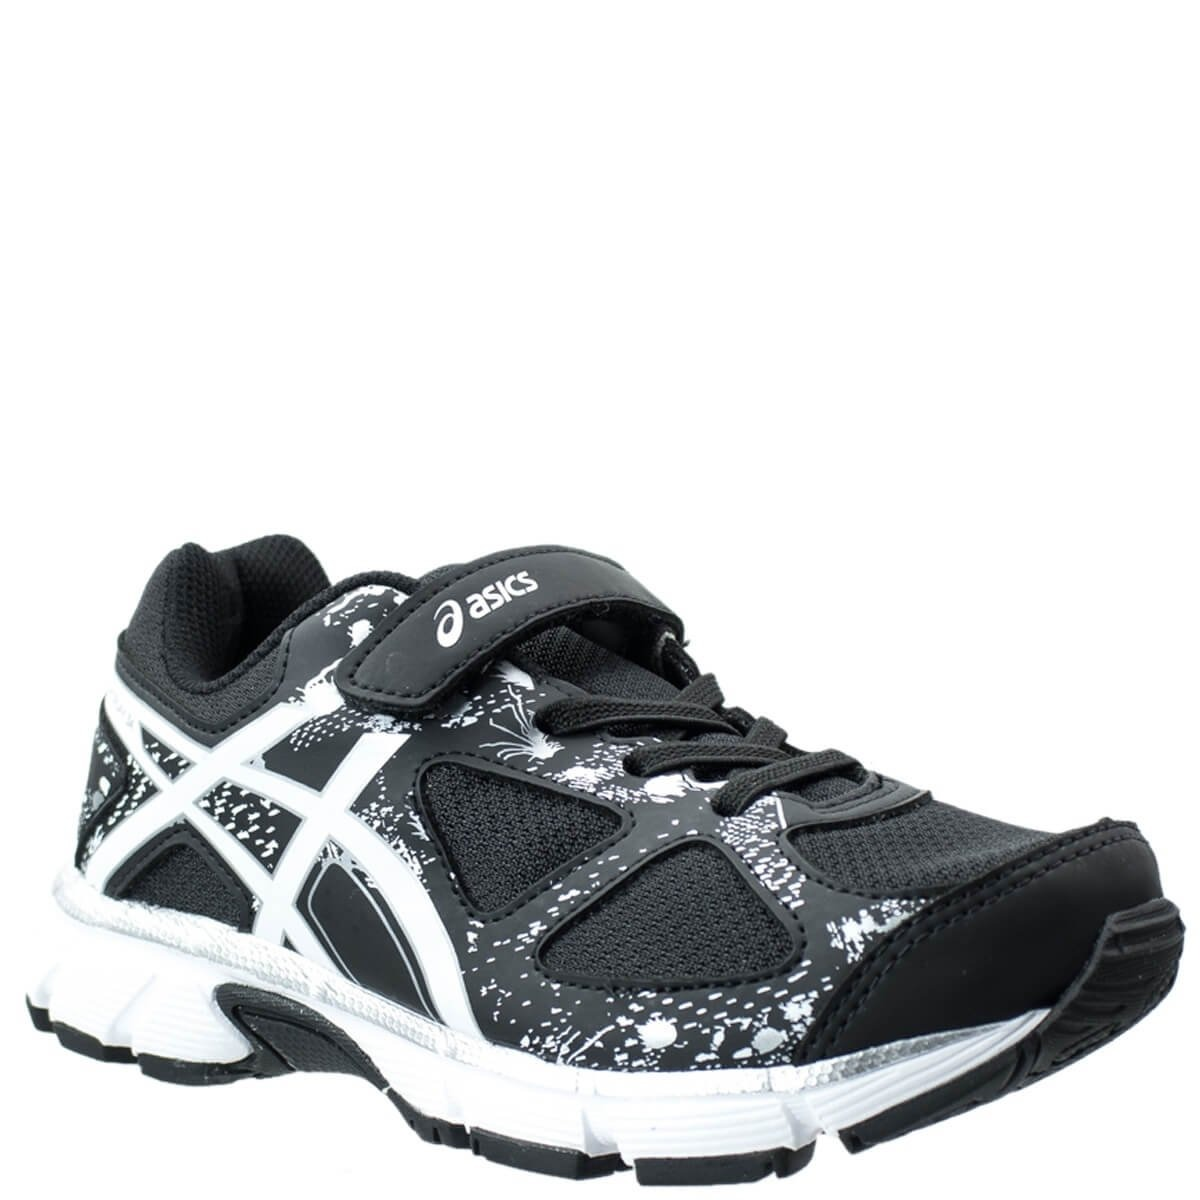 866650ae18f tênis infantil menino asics gel-light play 3 a ps. Carregando zoom.